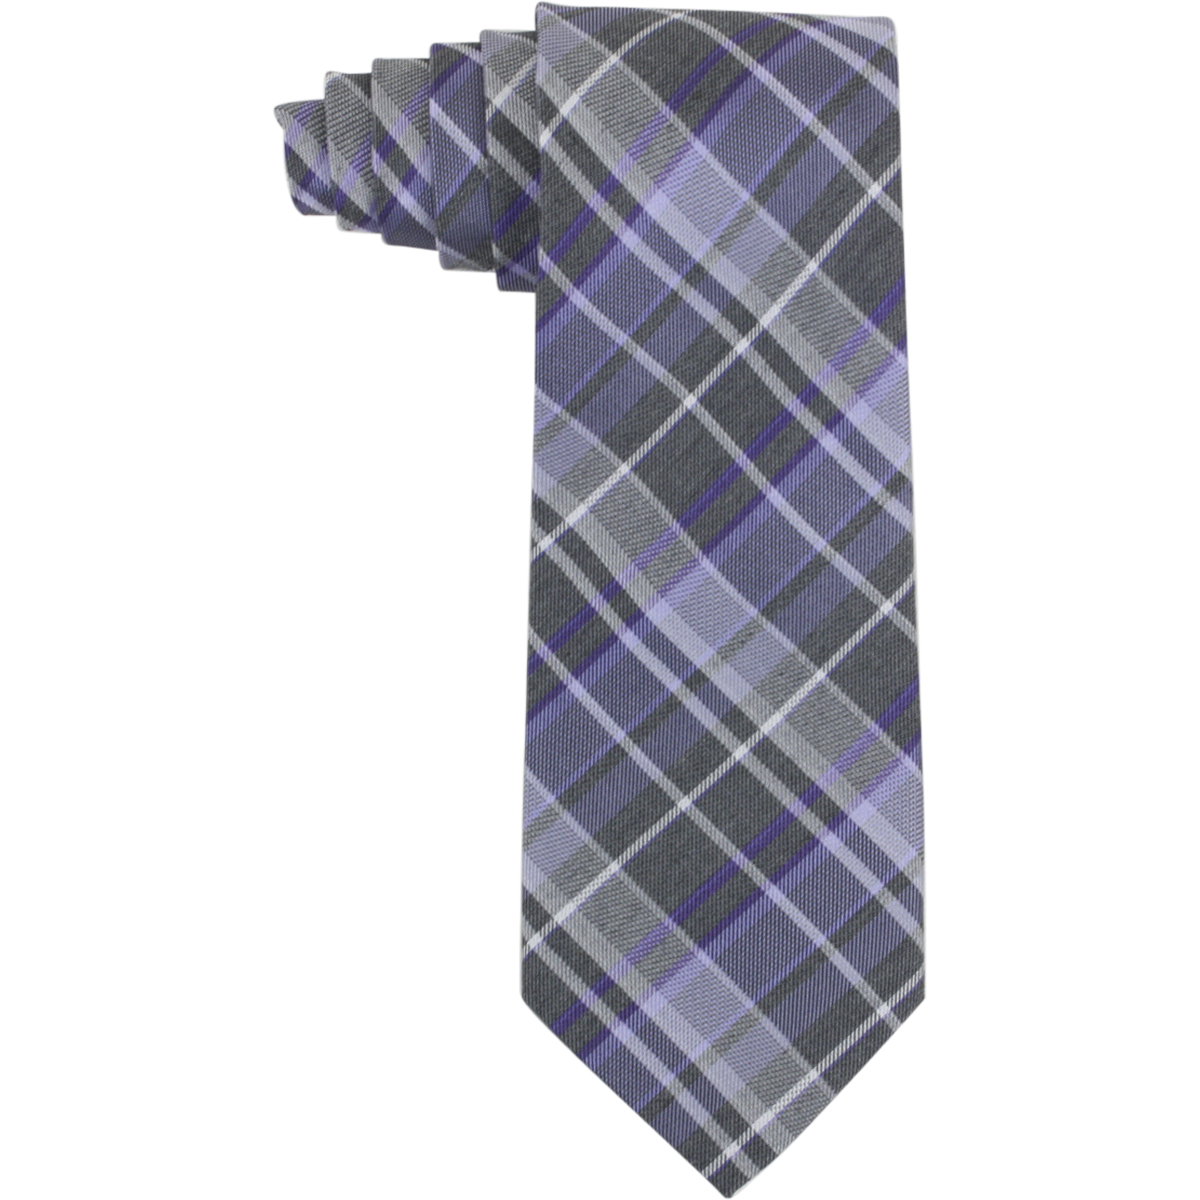 Image of Calvin Klein Men's Graphite Schoolboy Plaid Tie - Purple - 3 Inch